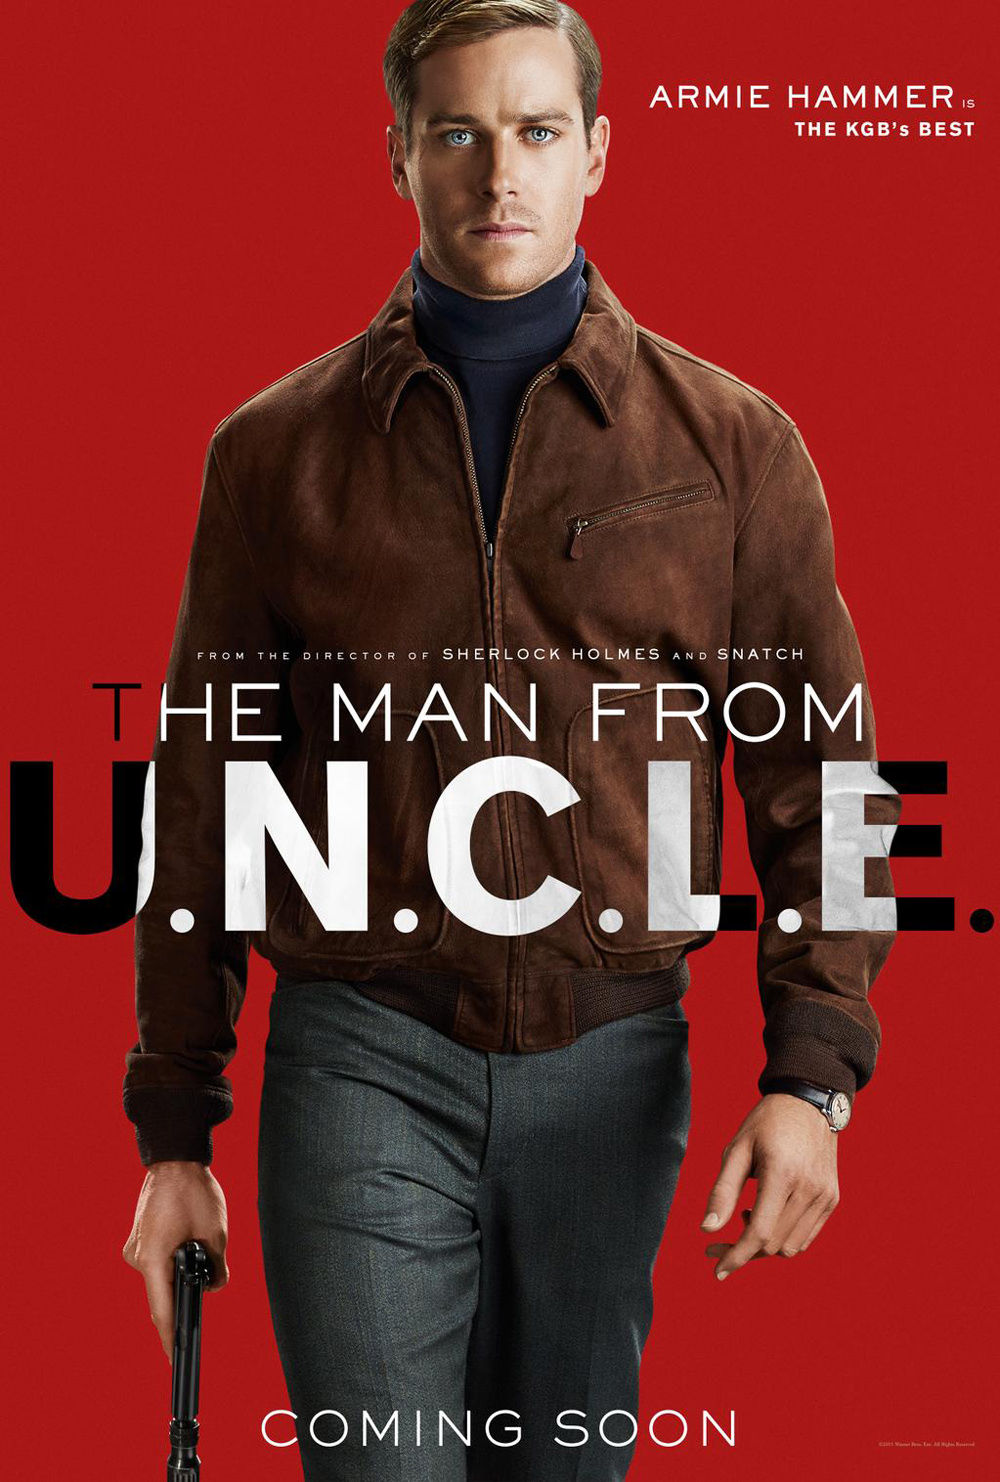 The-Man-From-UNCLE-Movie-Posters-Tom-Lorenzo-Site-TLO-1